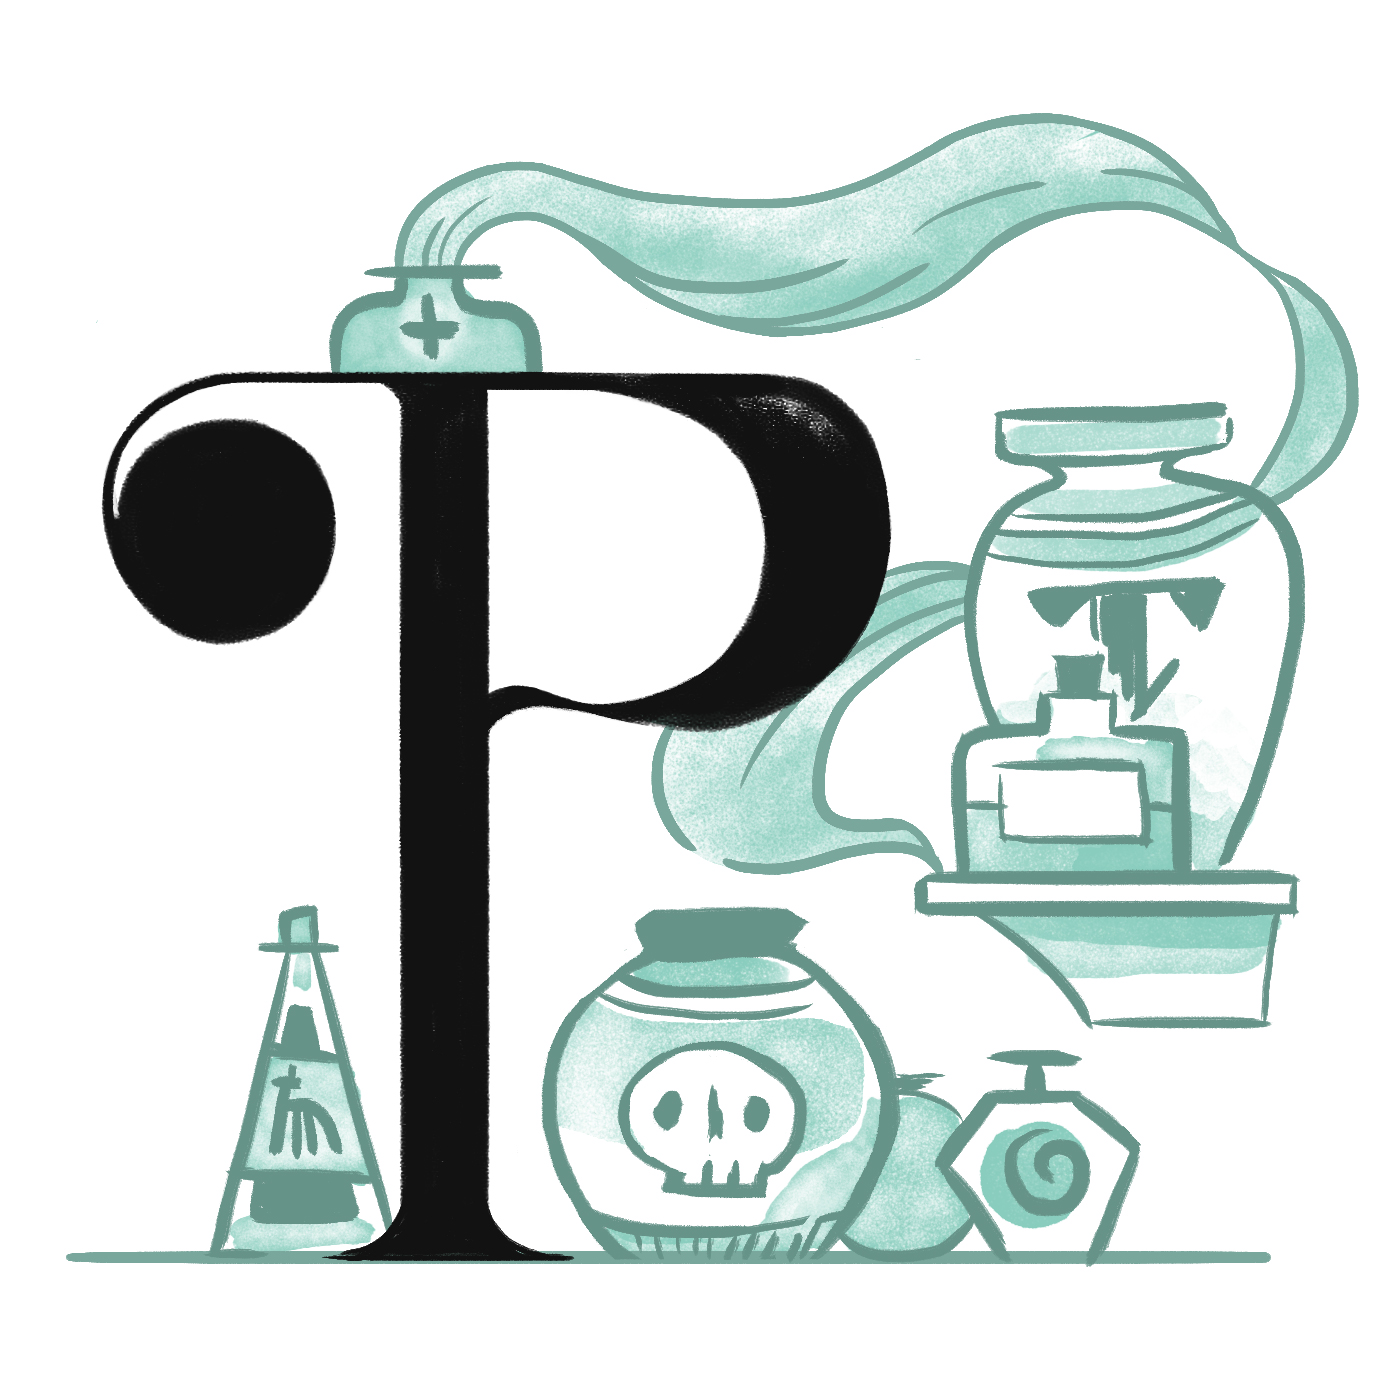 The letter P (dropcap) illustrated for a potions typography highlight.